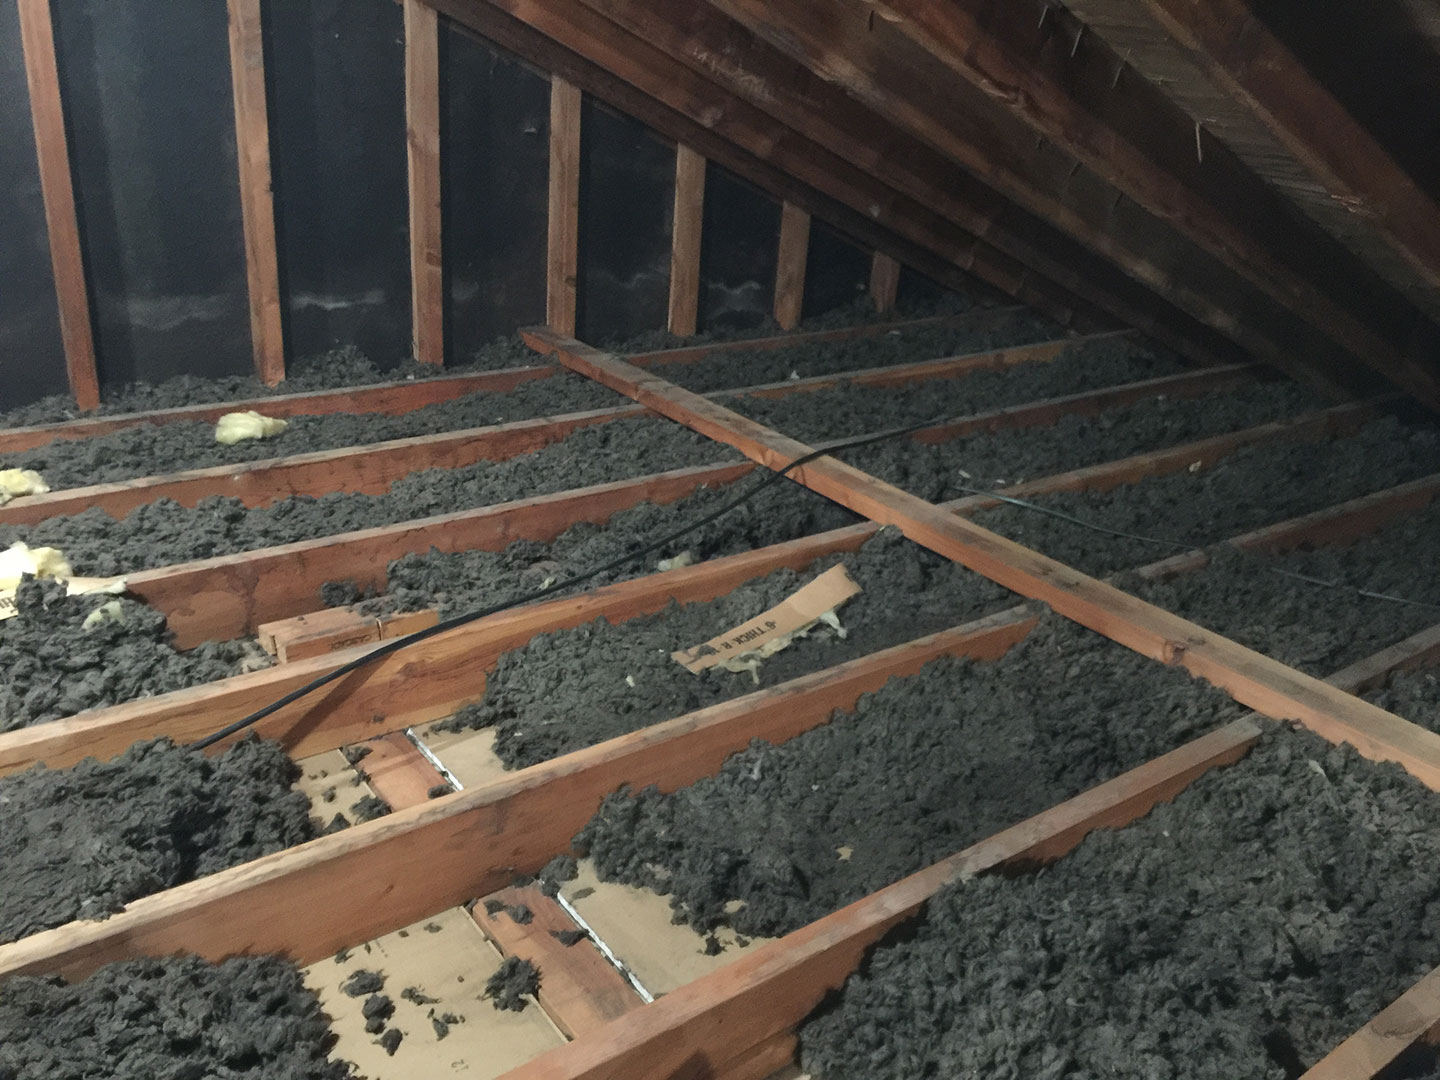 Charles' attic had a minimal amount of blown-in insulation.